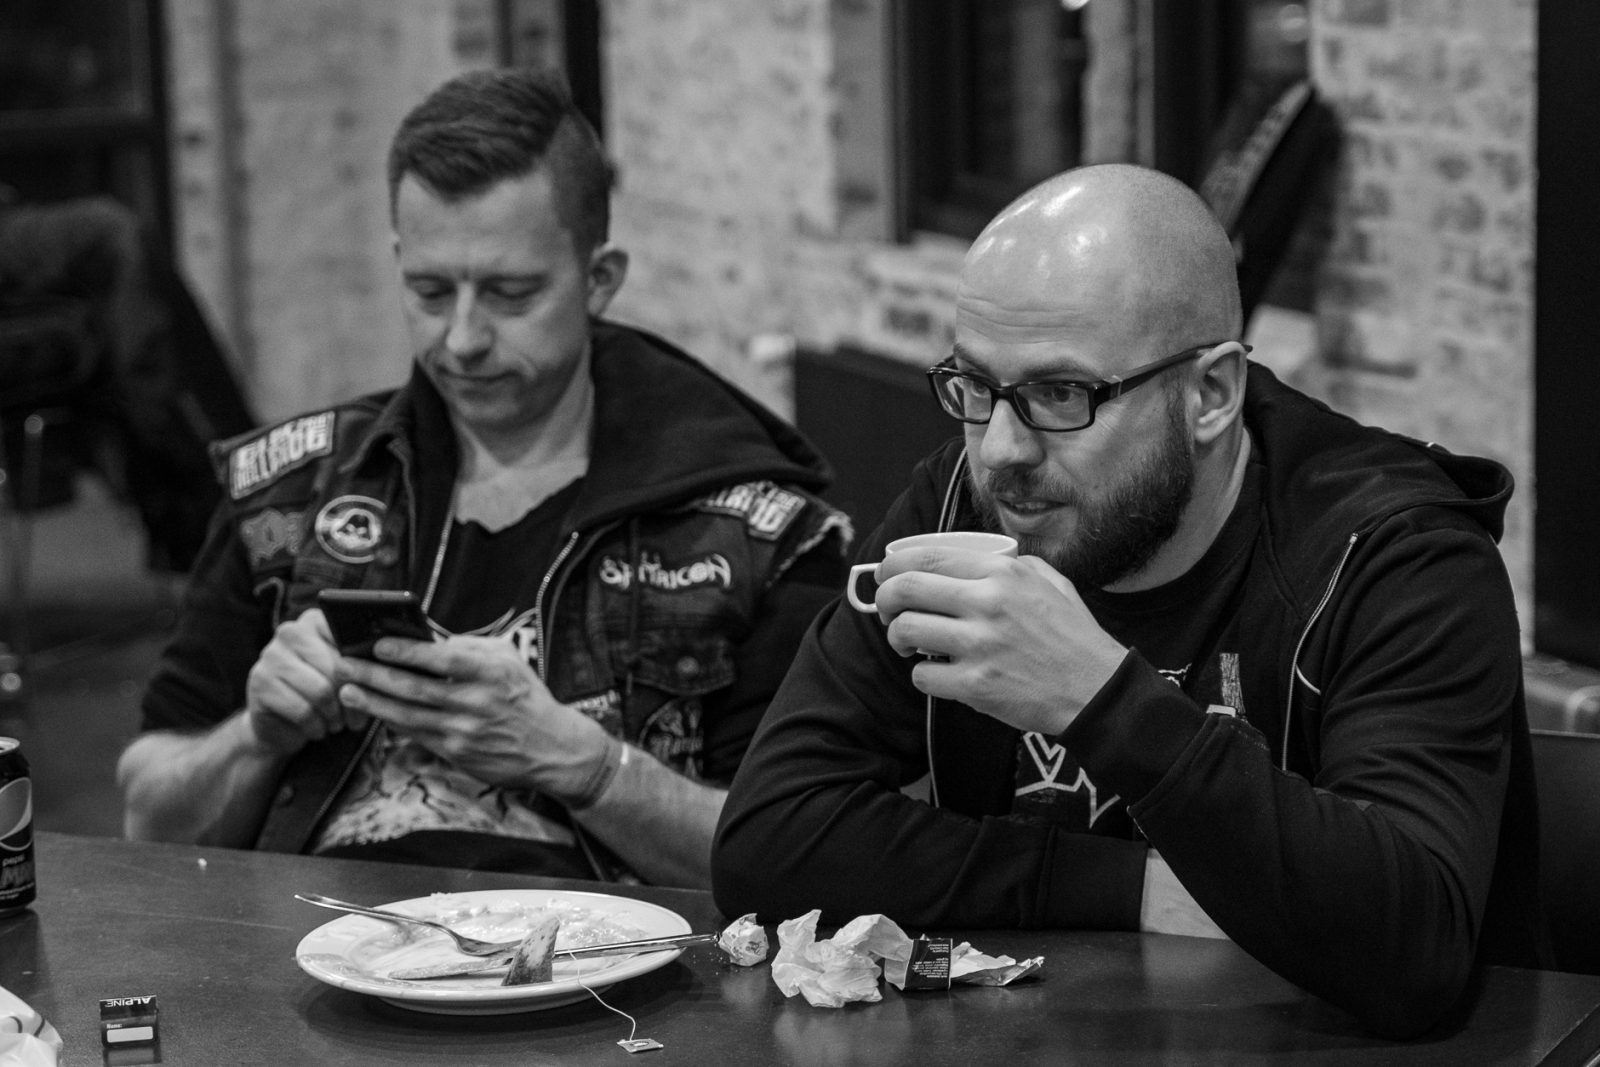 Concert Photography: Casper Villumsen drinking tea - Electric Hellride backstage at Hammer Smashed Face in Frederikshavn, 2019